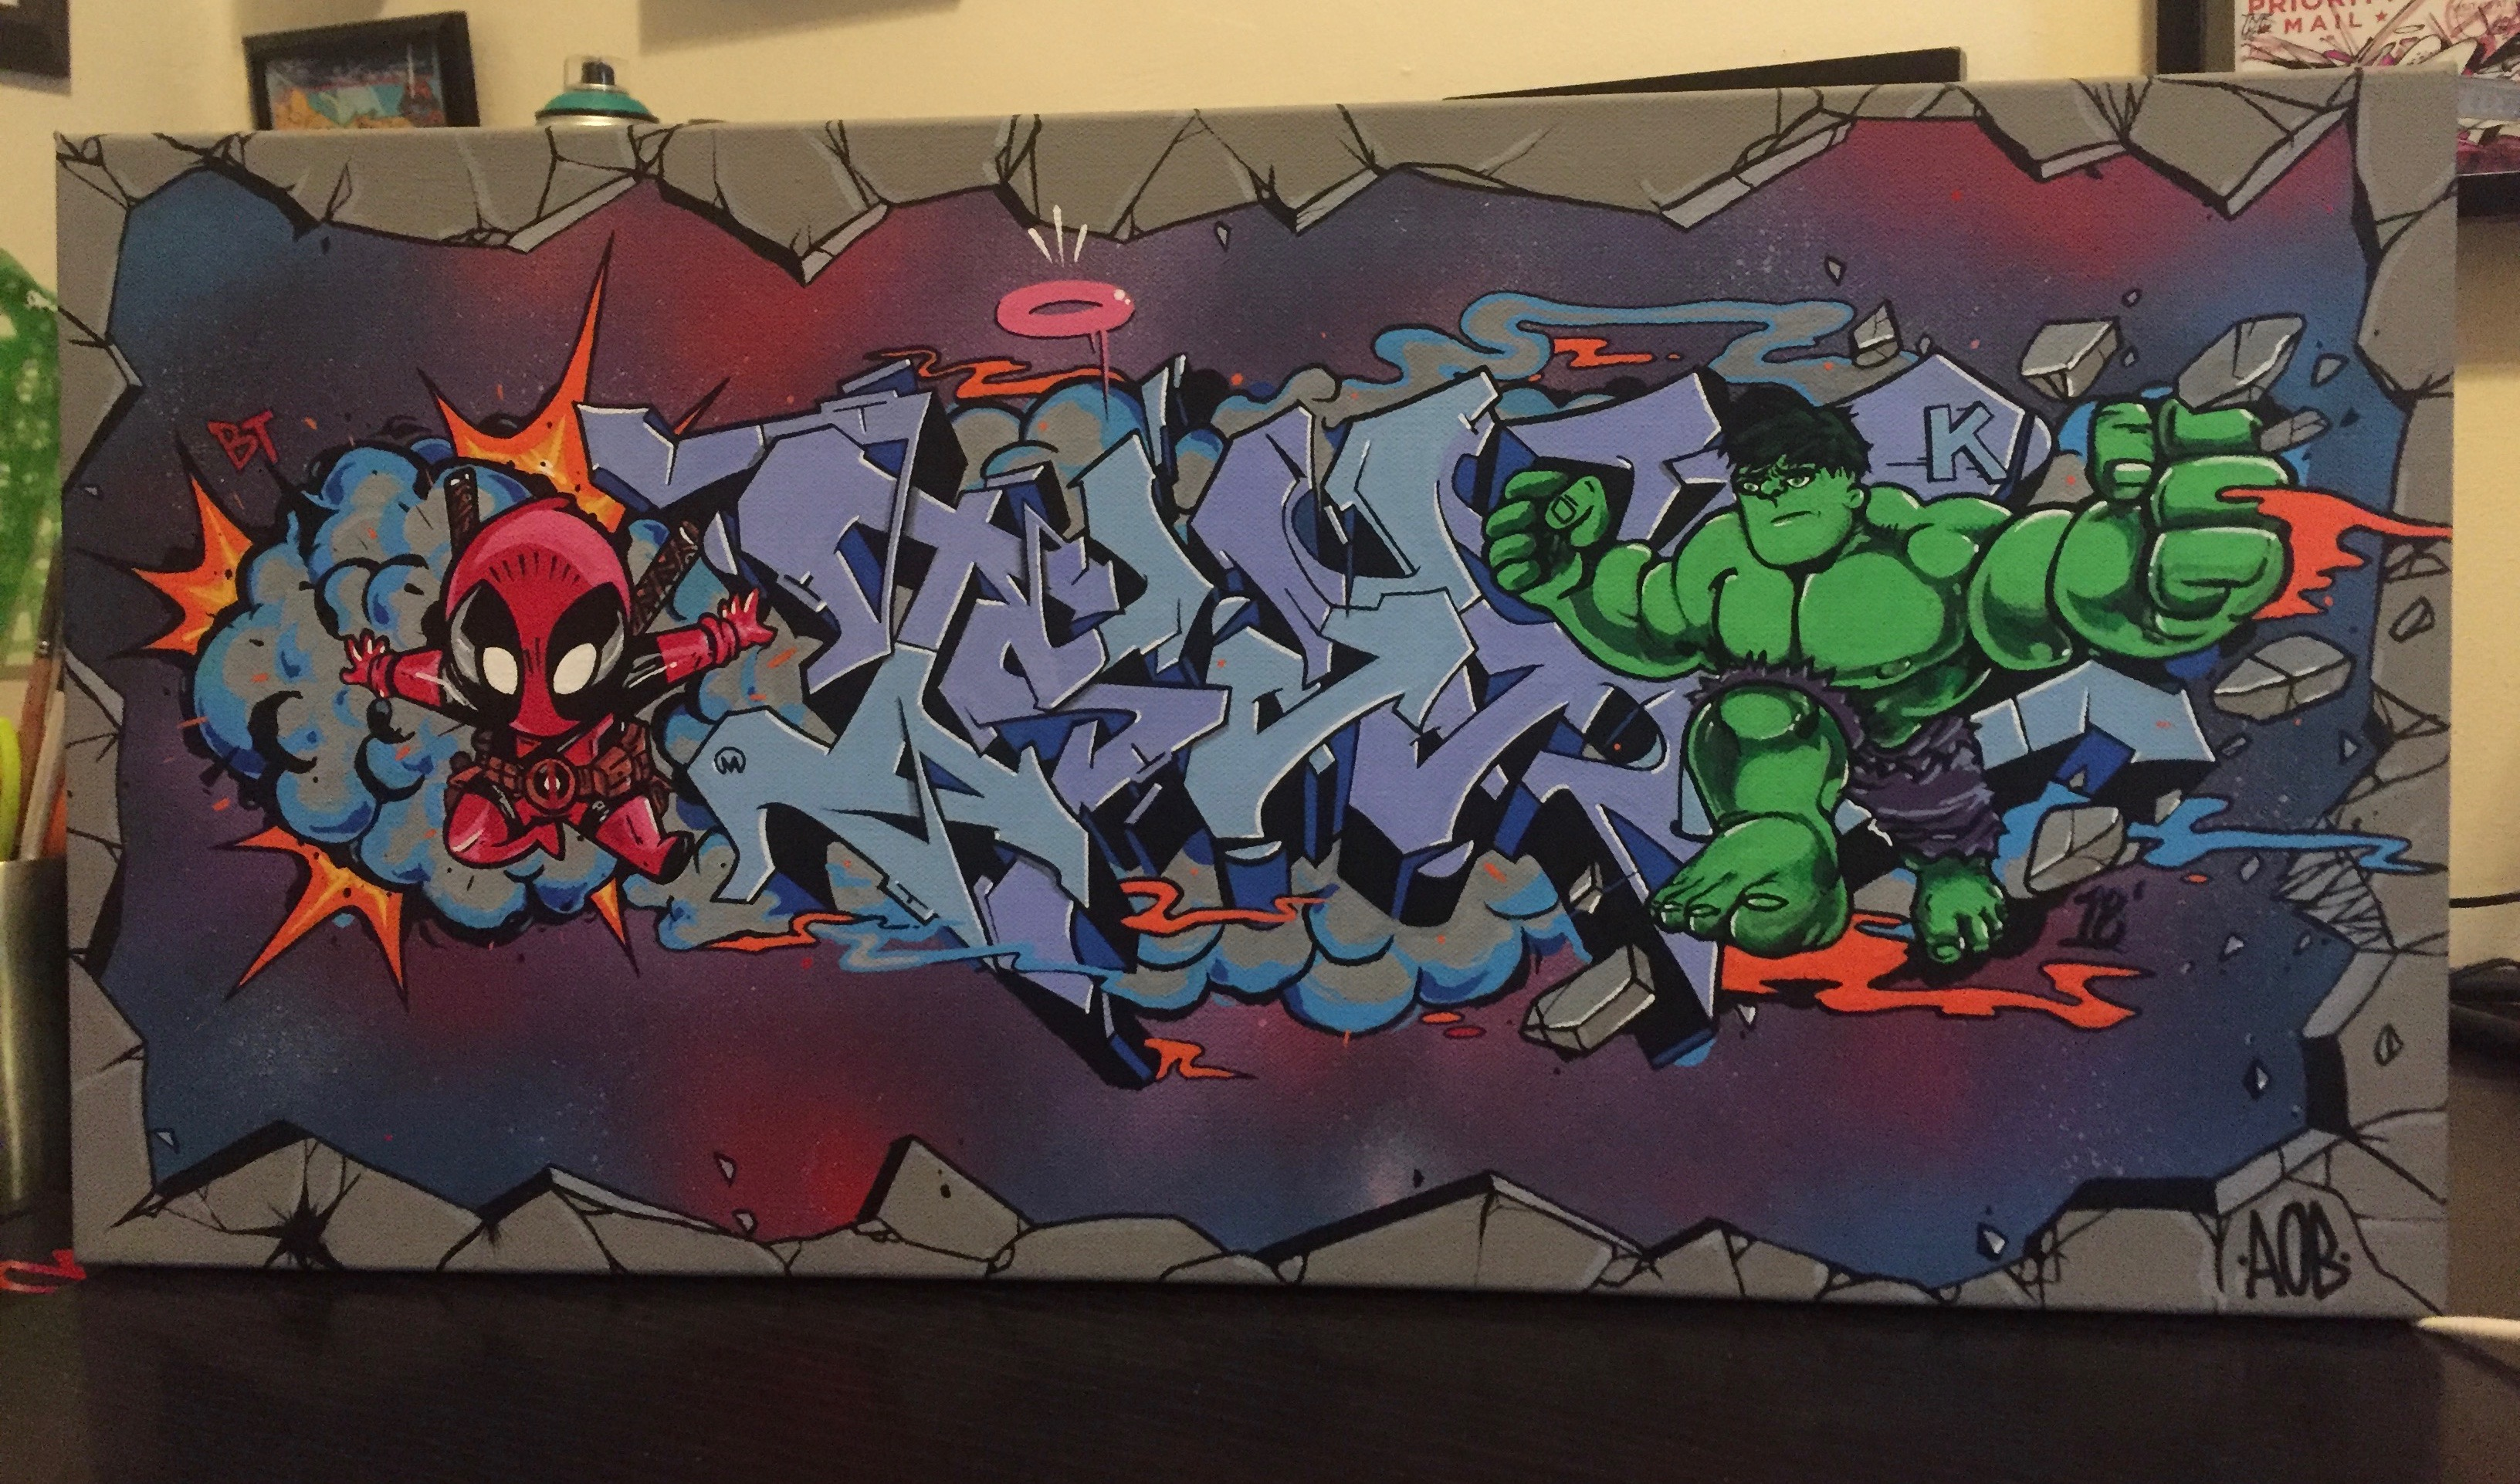 """Hulk x Spider-Man, """"ISAAK"""" by Nover. Spray Paint & Markers on Canvas. 2018."""